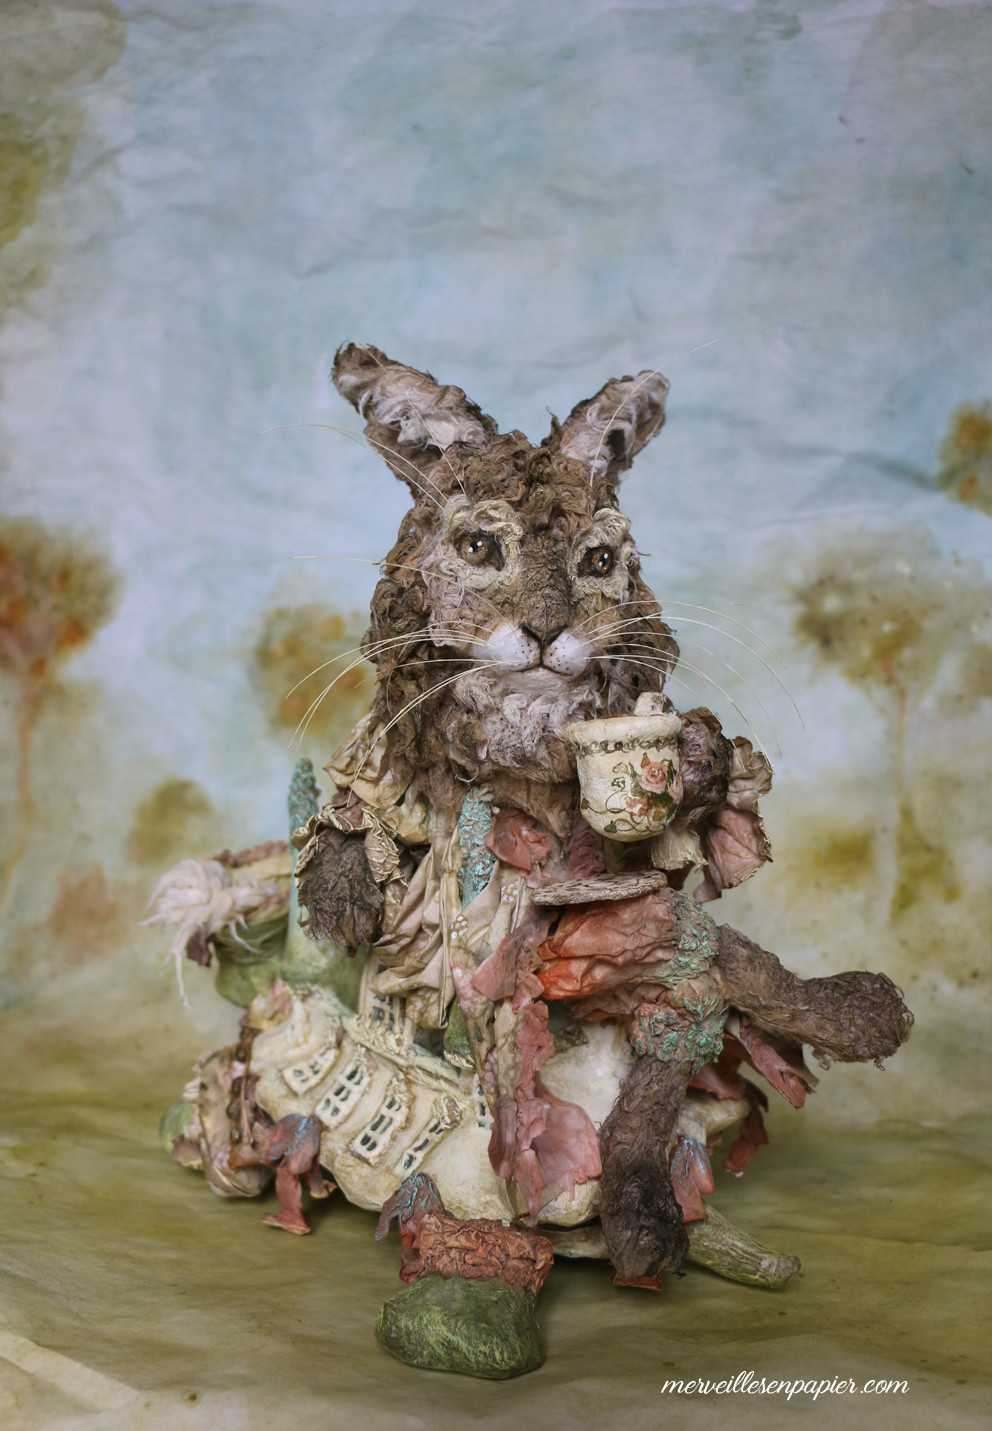 The Hare and The tortoise- La Fontaine 's Fables